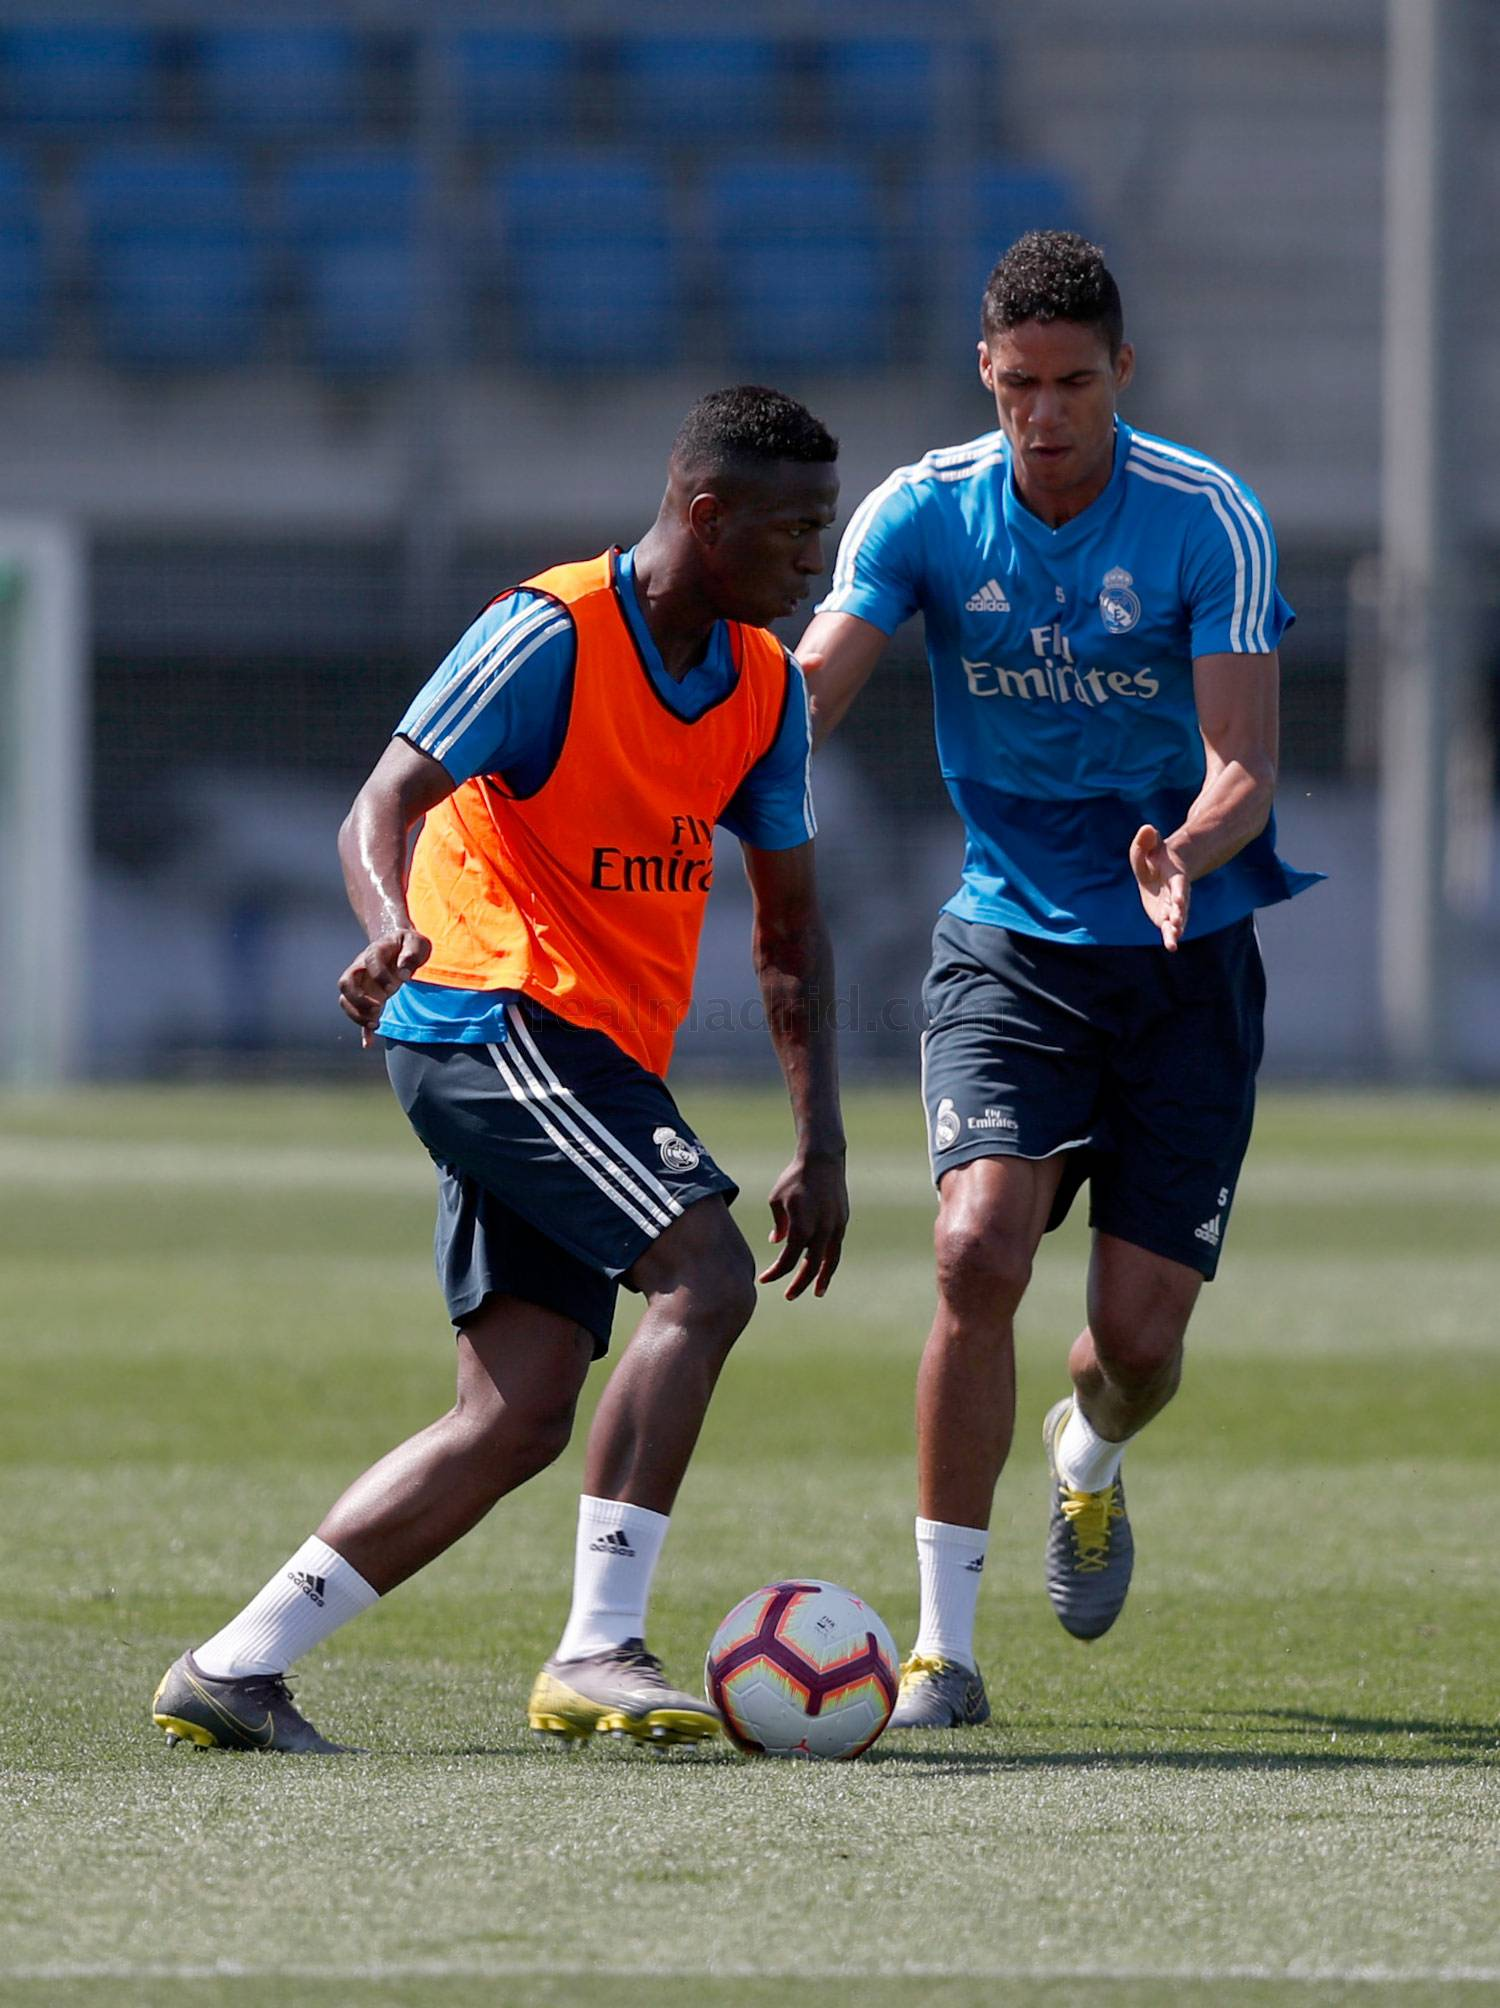 Real Madrid - Entrenamiento del Real Madrid - 02-05-2019